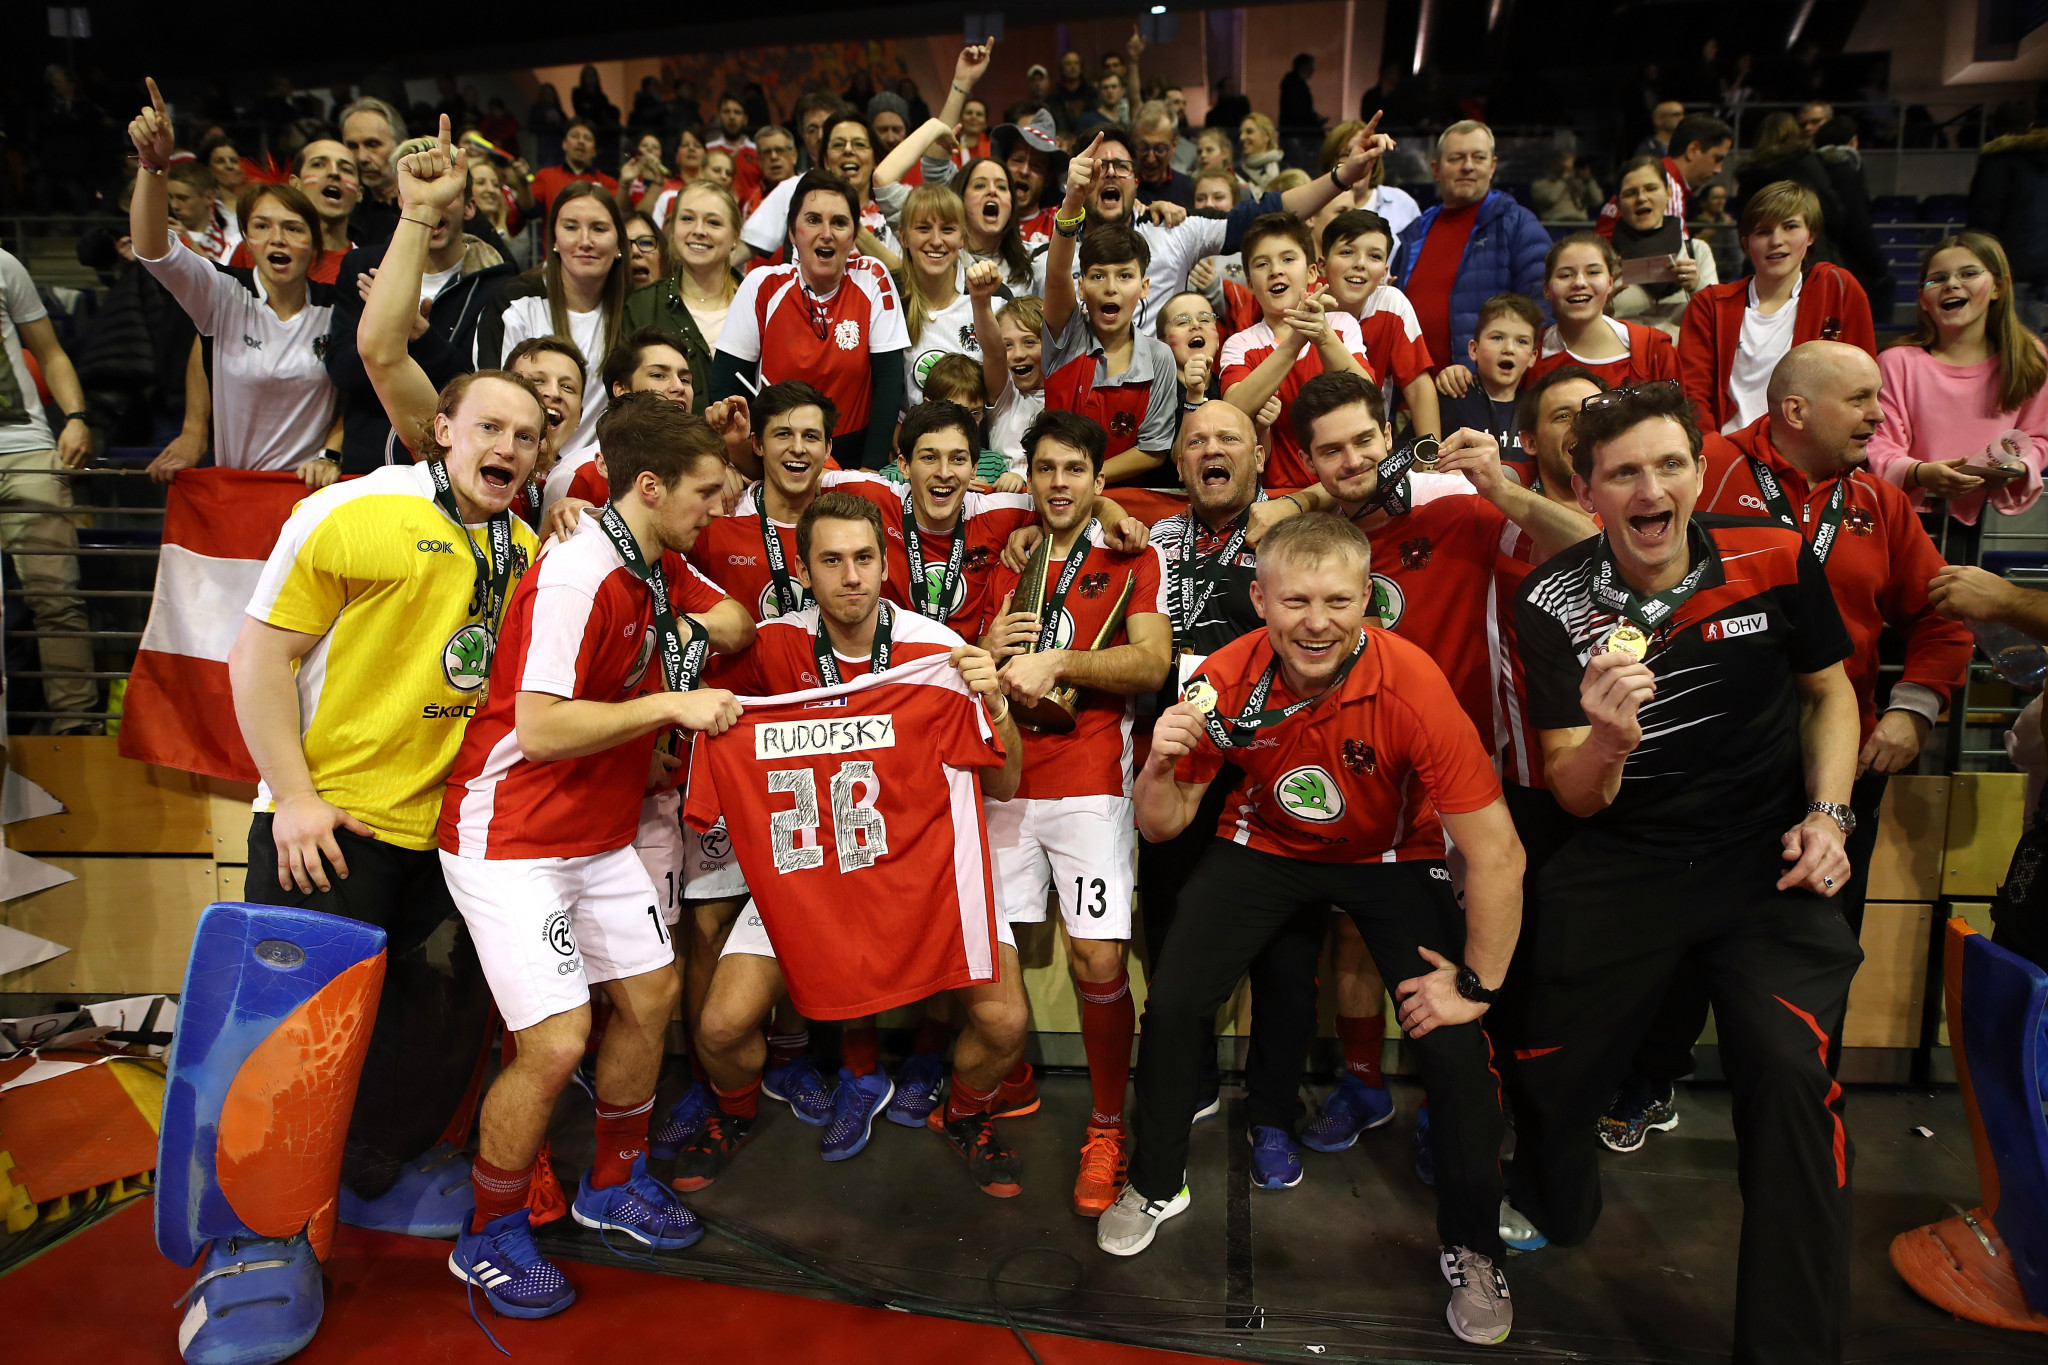 Austria celebrate after winning the 2018 Indoor Hockey World Cup in Berlin with victory over hosts Germany ©Getty Images